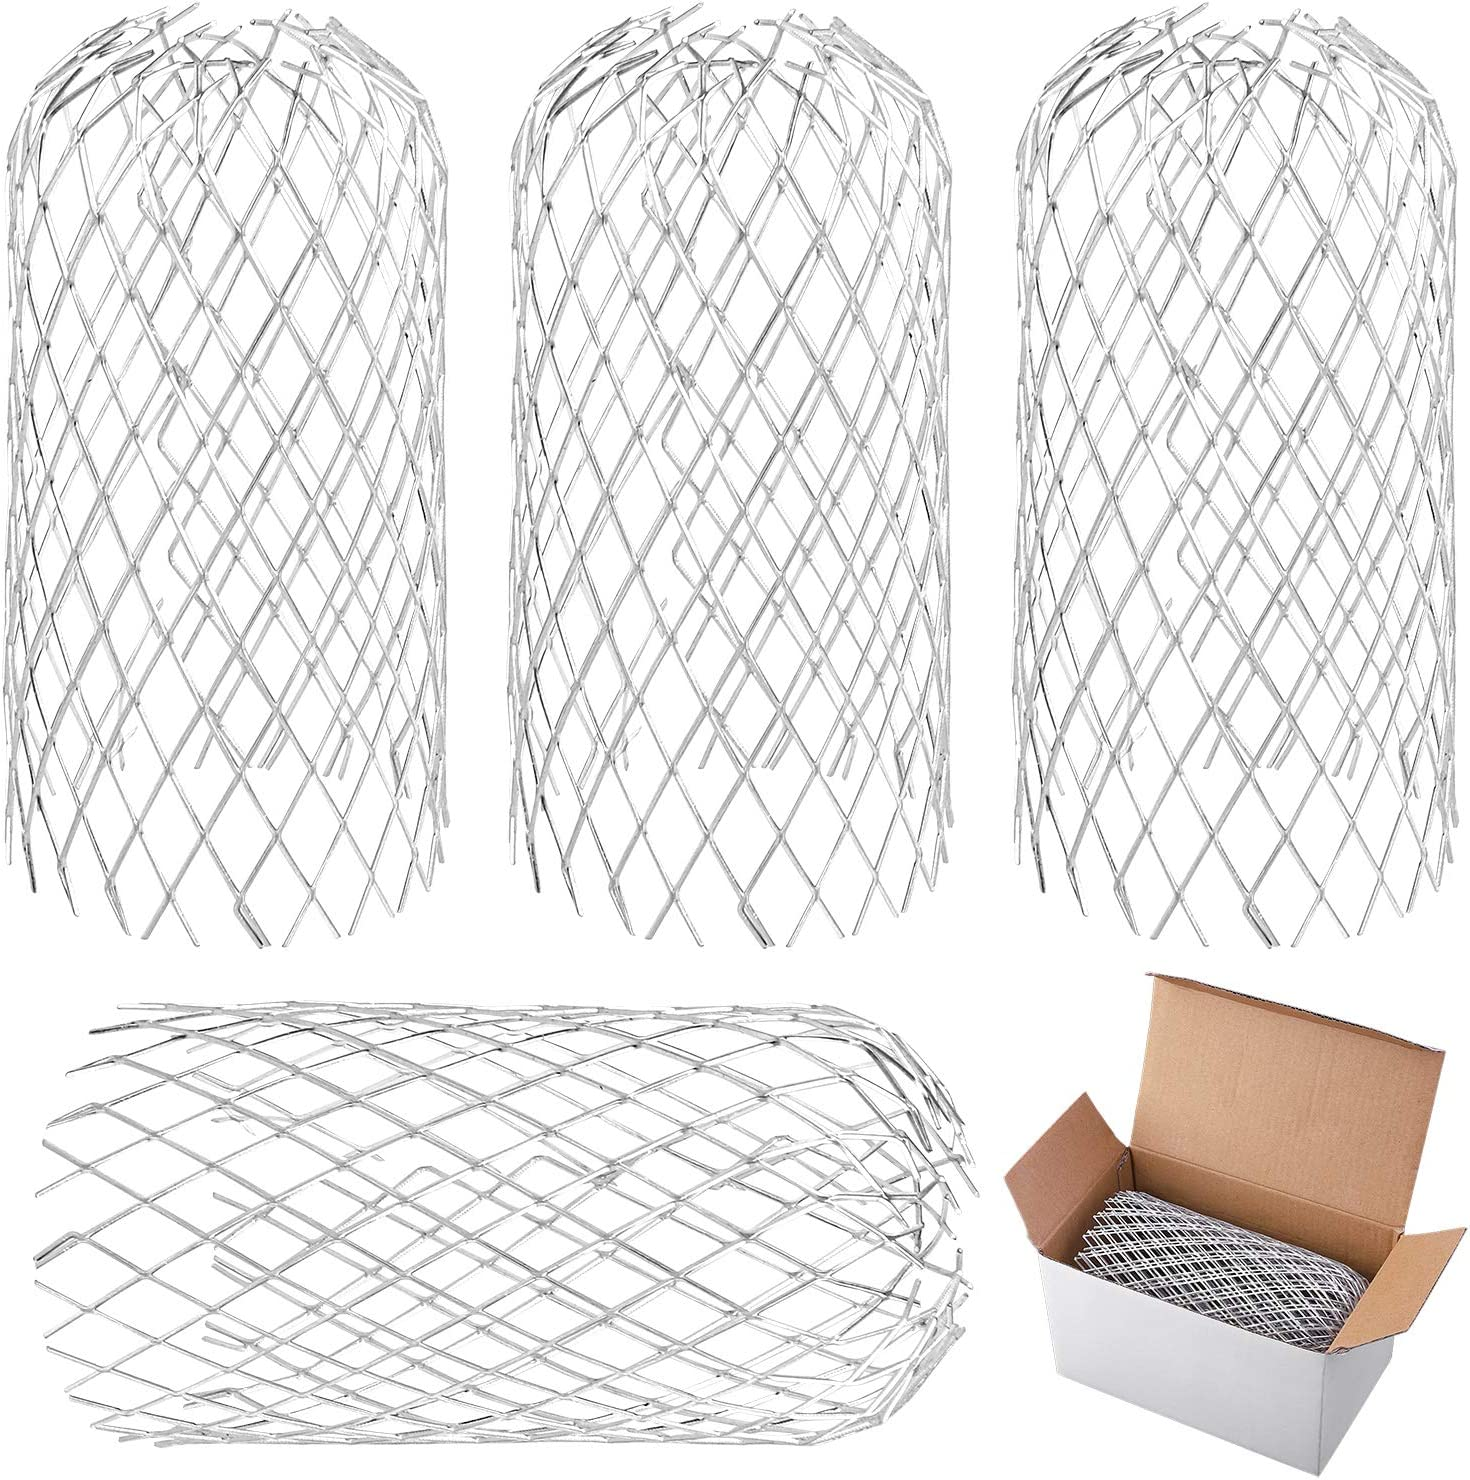 Downpipe URATOT 4 Pack Aluminum Gutter Guards Expandable Filter Strainer Leaf Strainer Gutter Sieve Metal Downpipe Protection Guards for Gutter